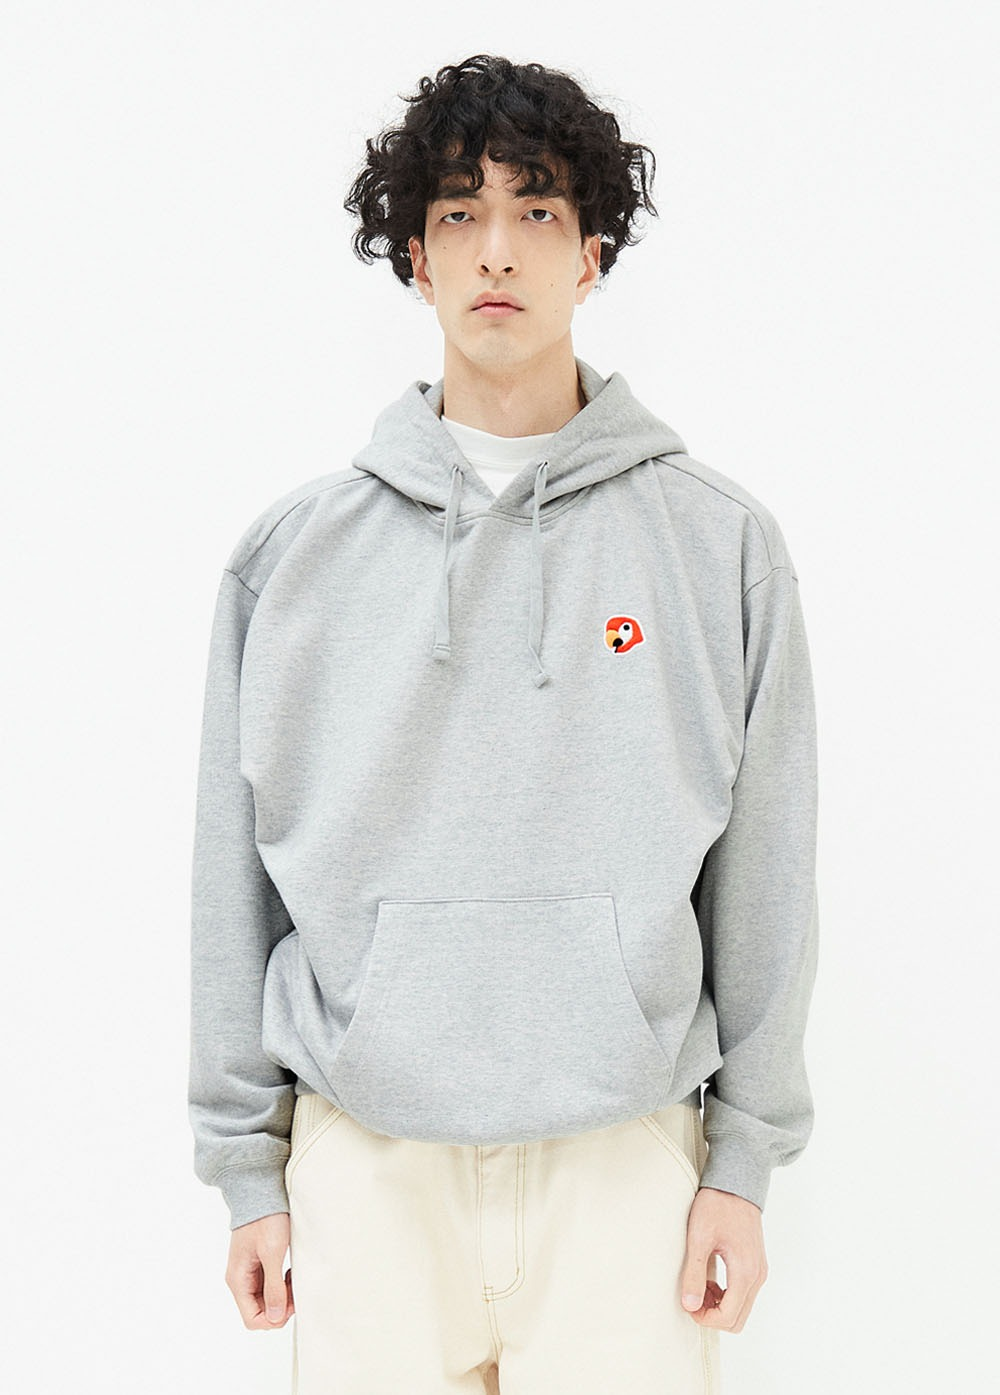 KANCO LOGO HOODIE heather gray